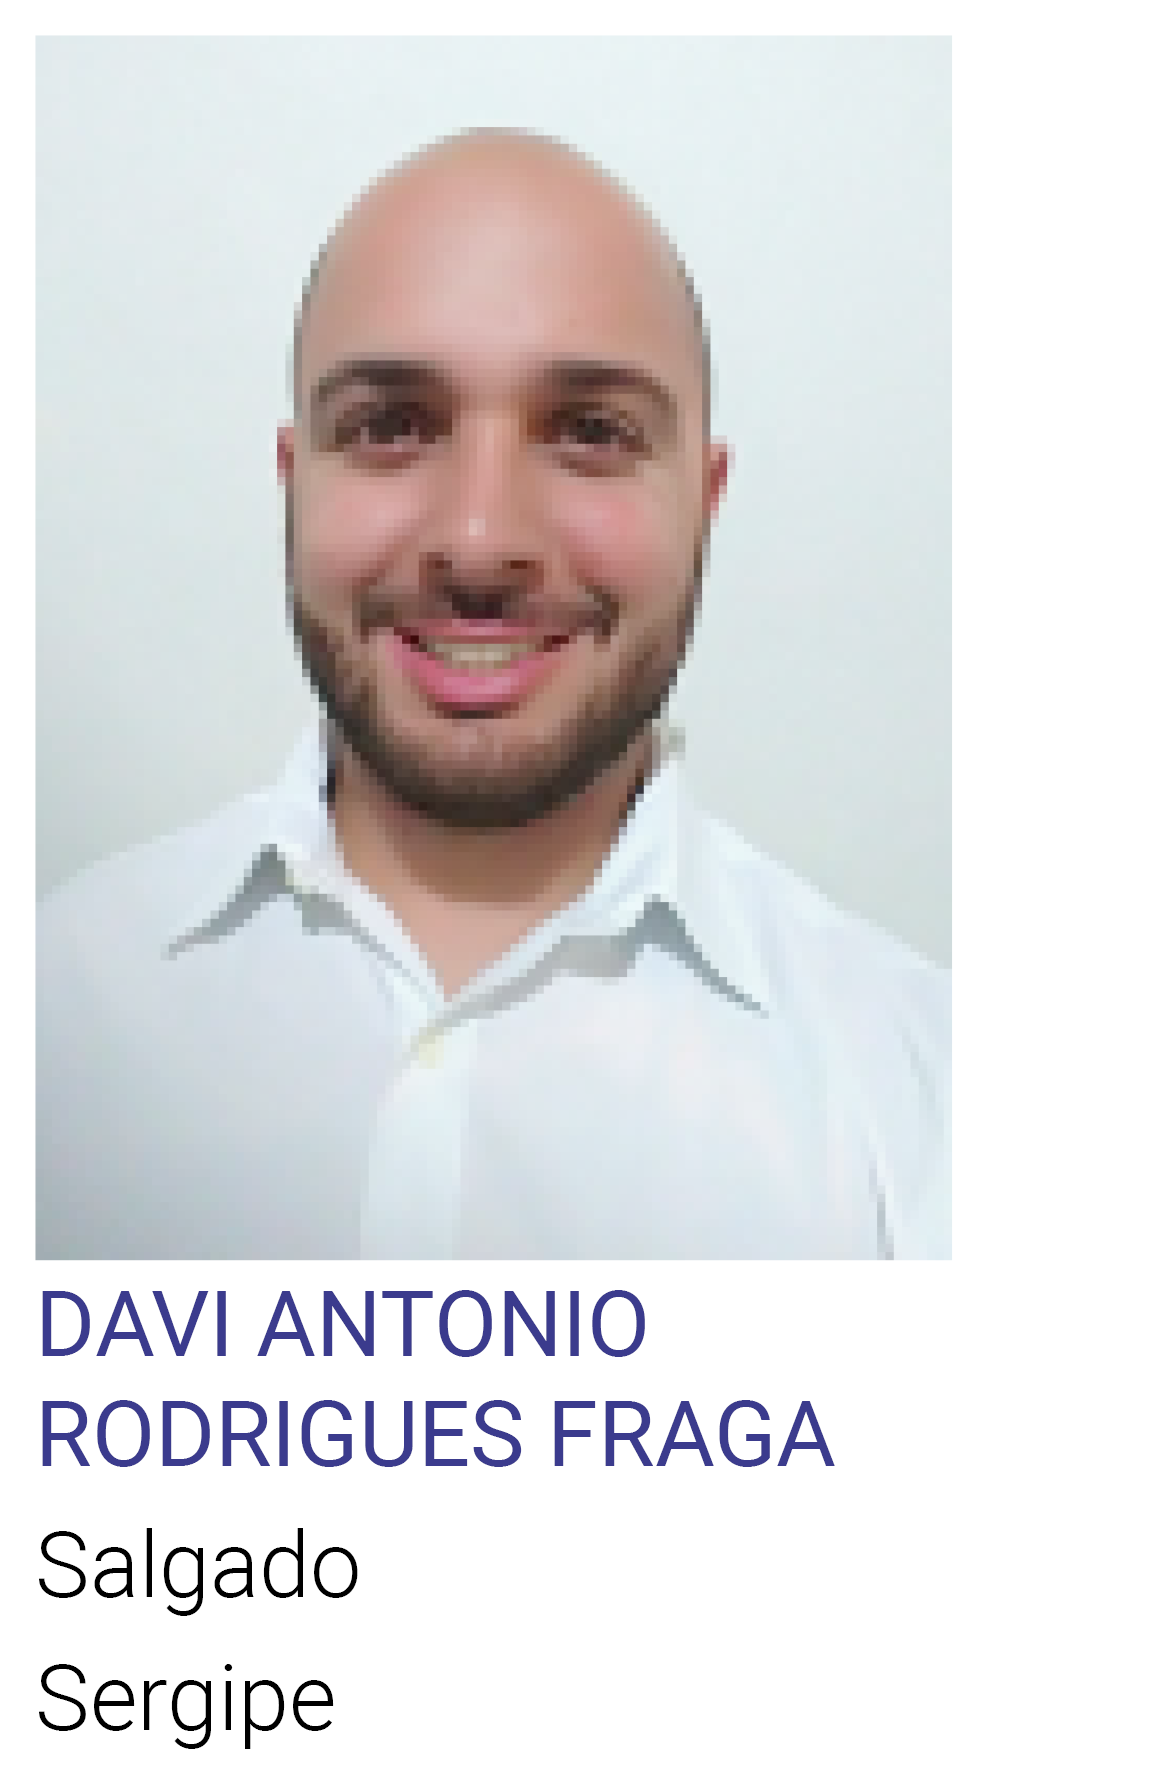 DAVI ANTONIO RODRIGUES FRAGA